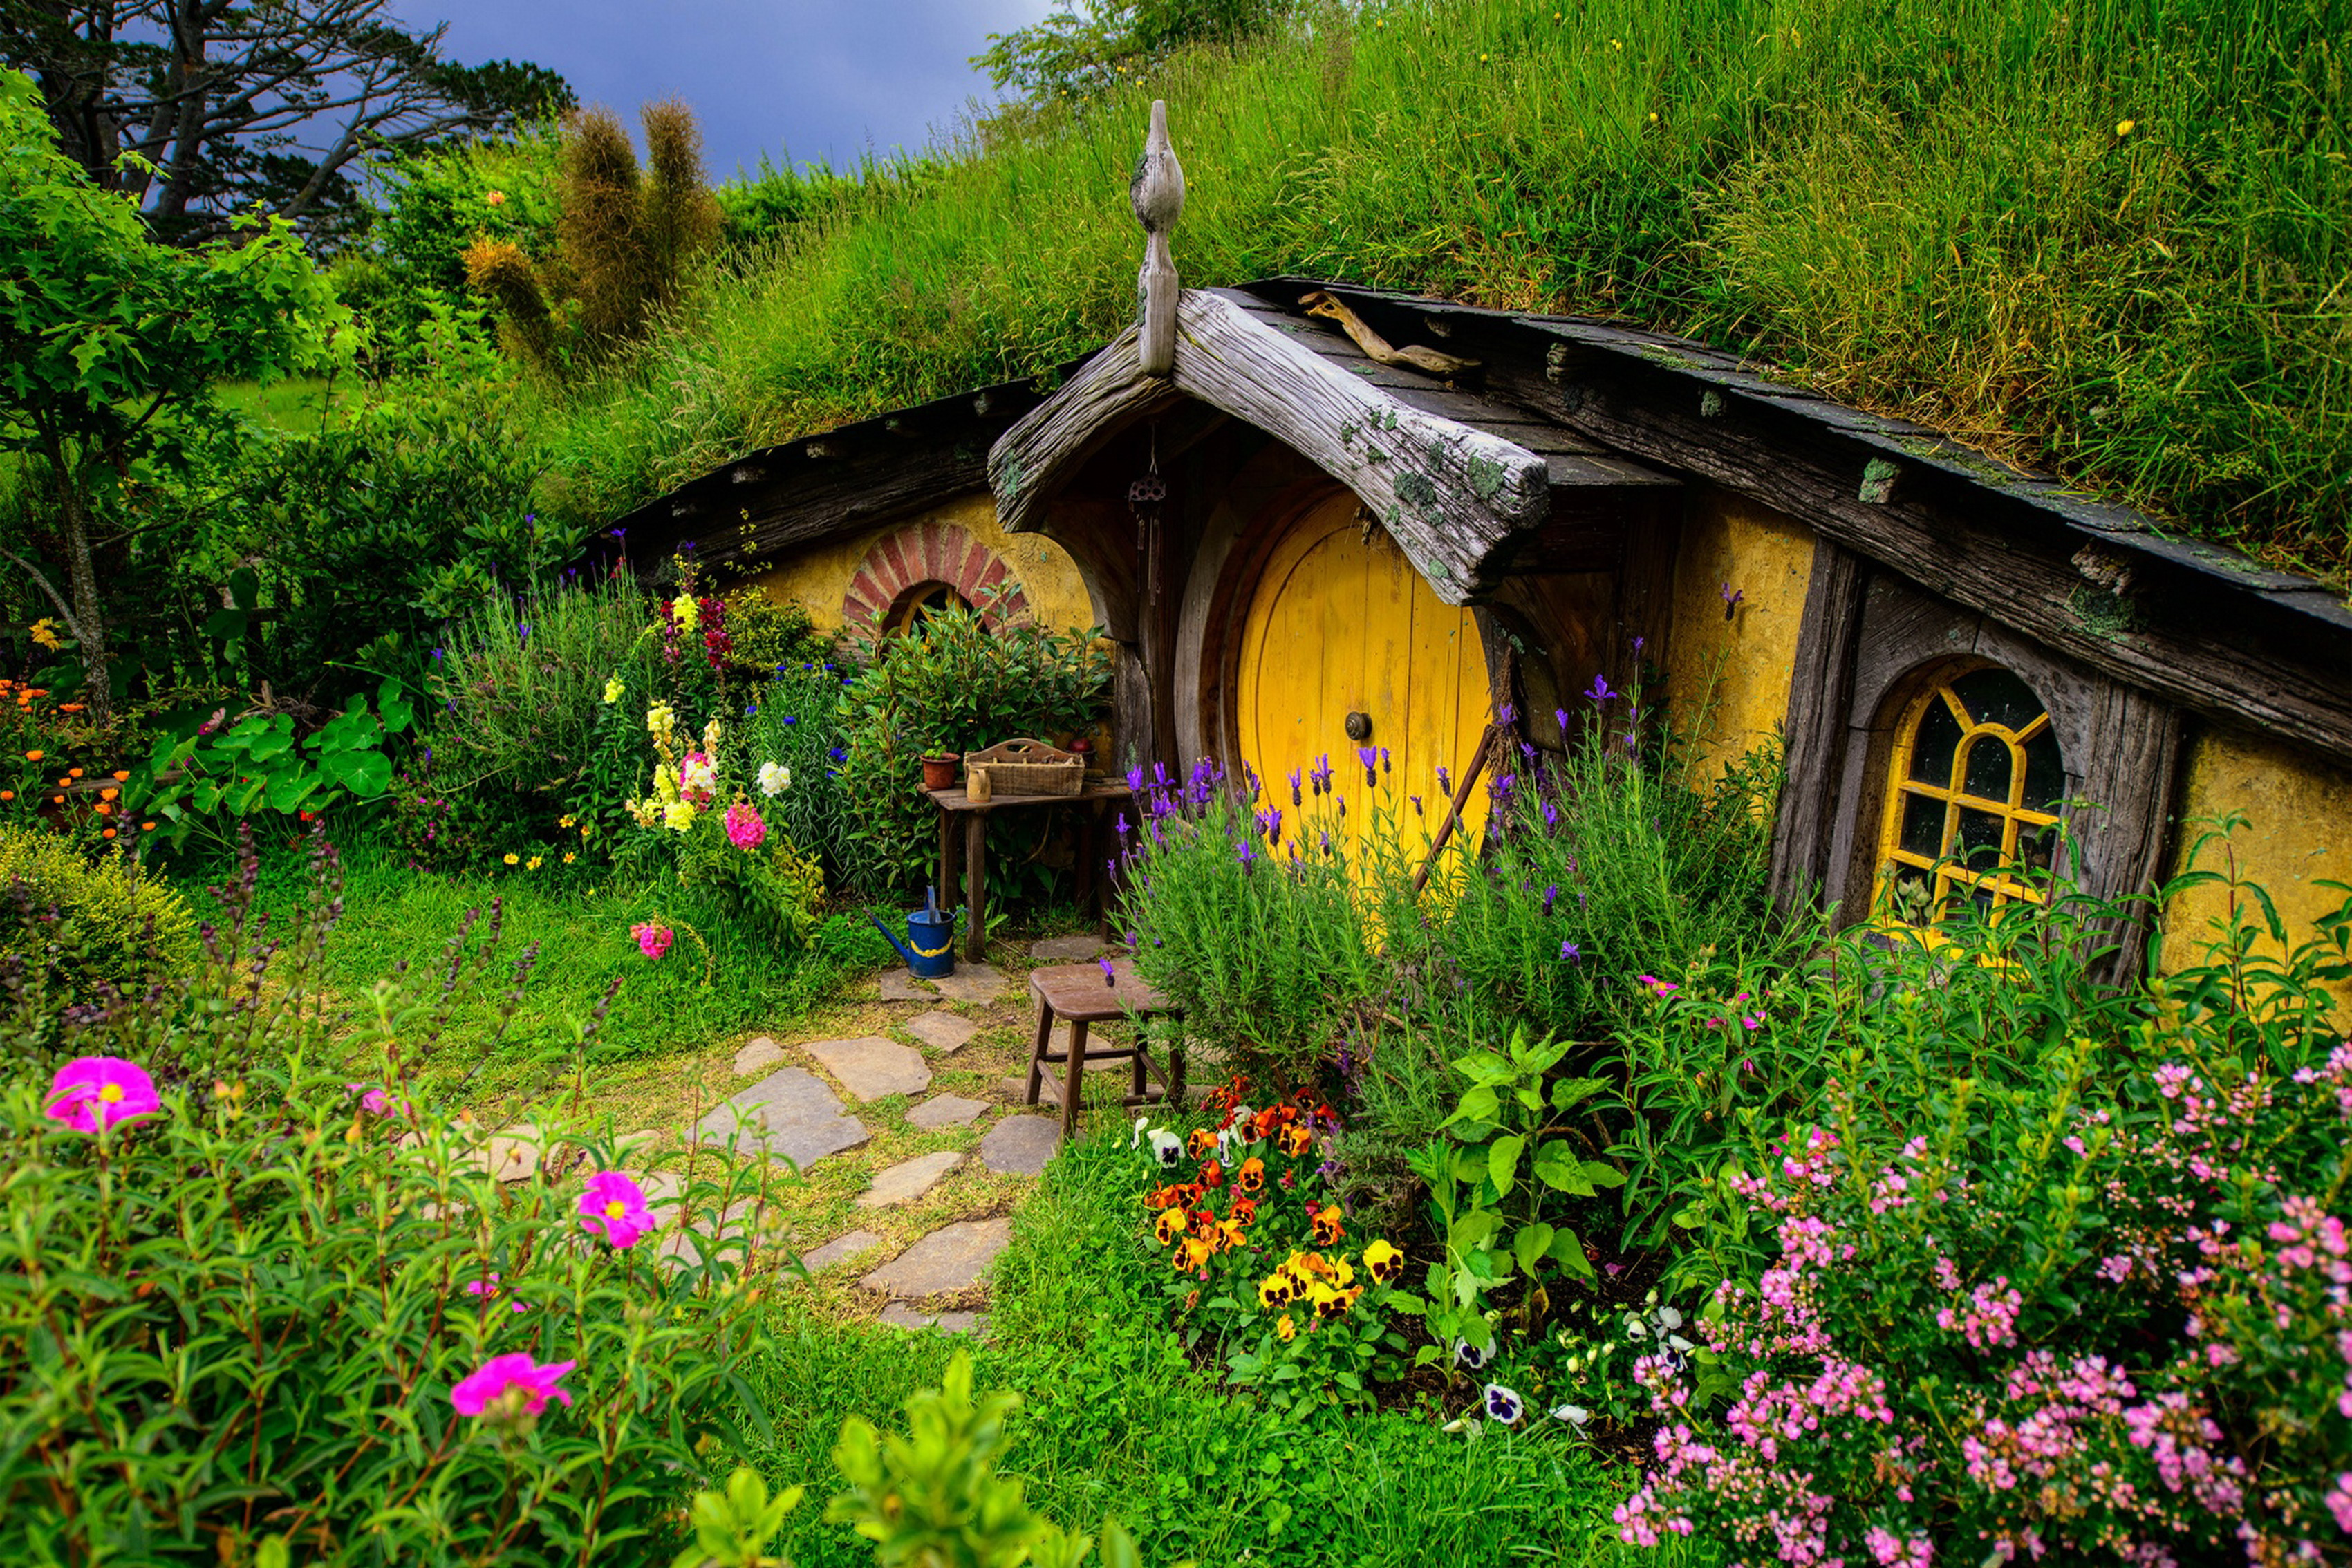 lord of the rings hobbit house hill flowers grass living room home art decor wood frame fabric. Black Bedroom Furniture Sets. Home Design Ideas